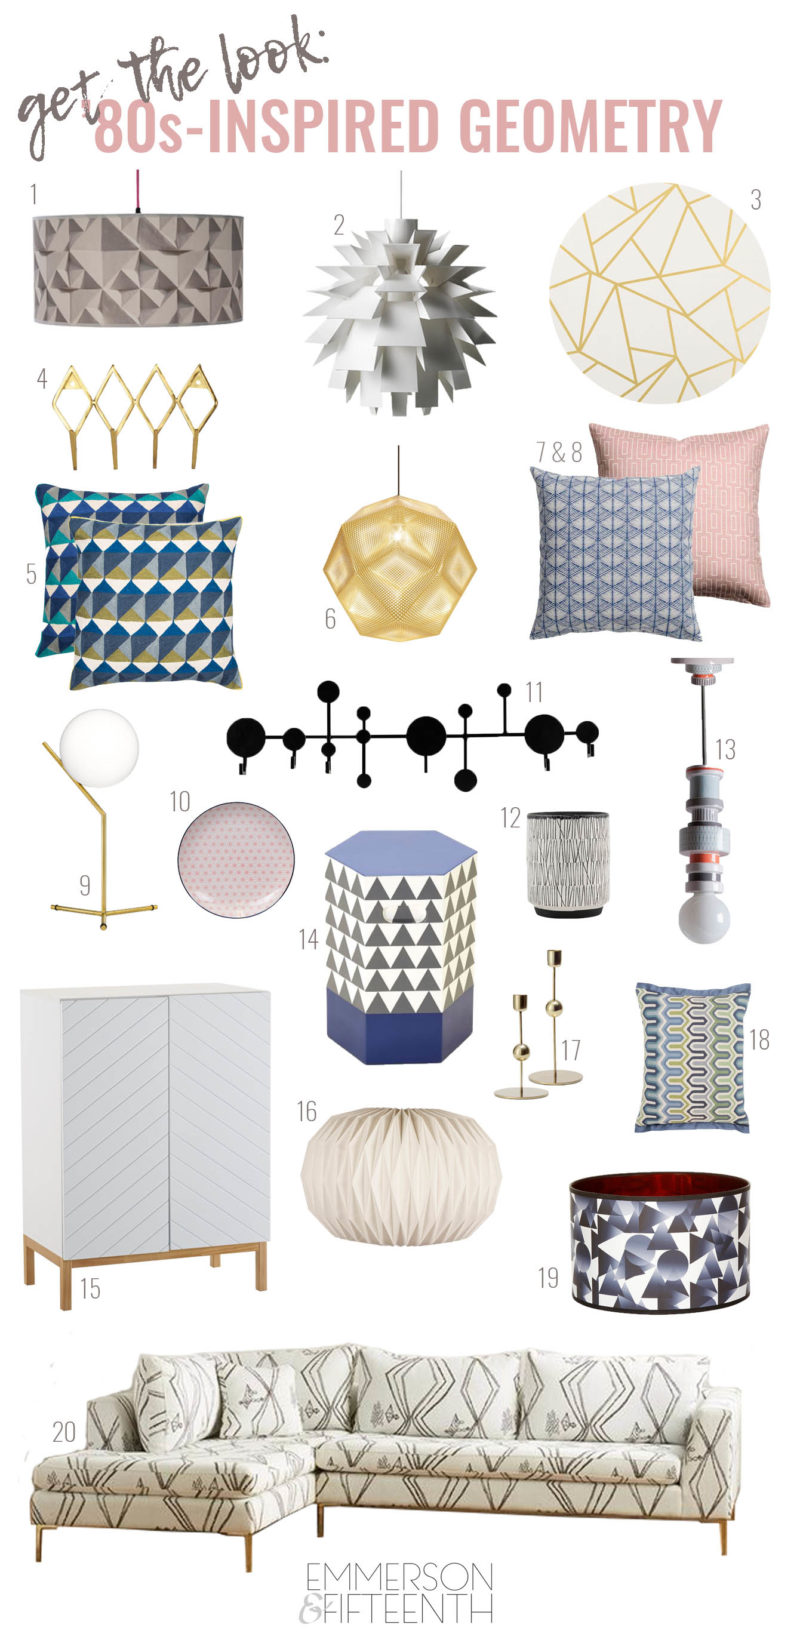 Get the Look: Interior Design Trend Round Up - 80s Geometric Home Decor